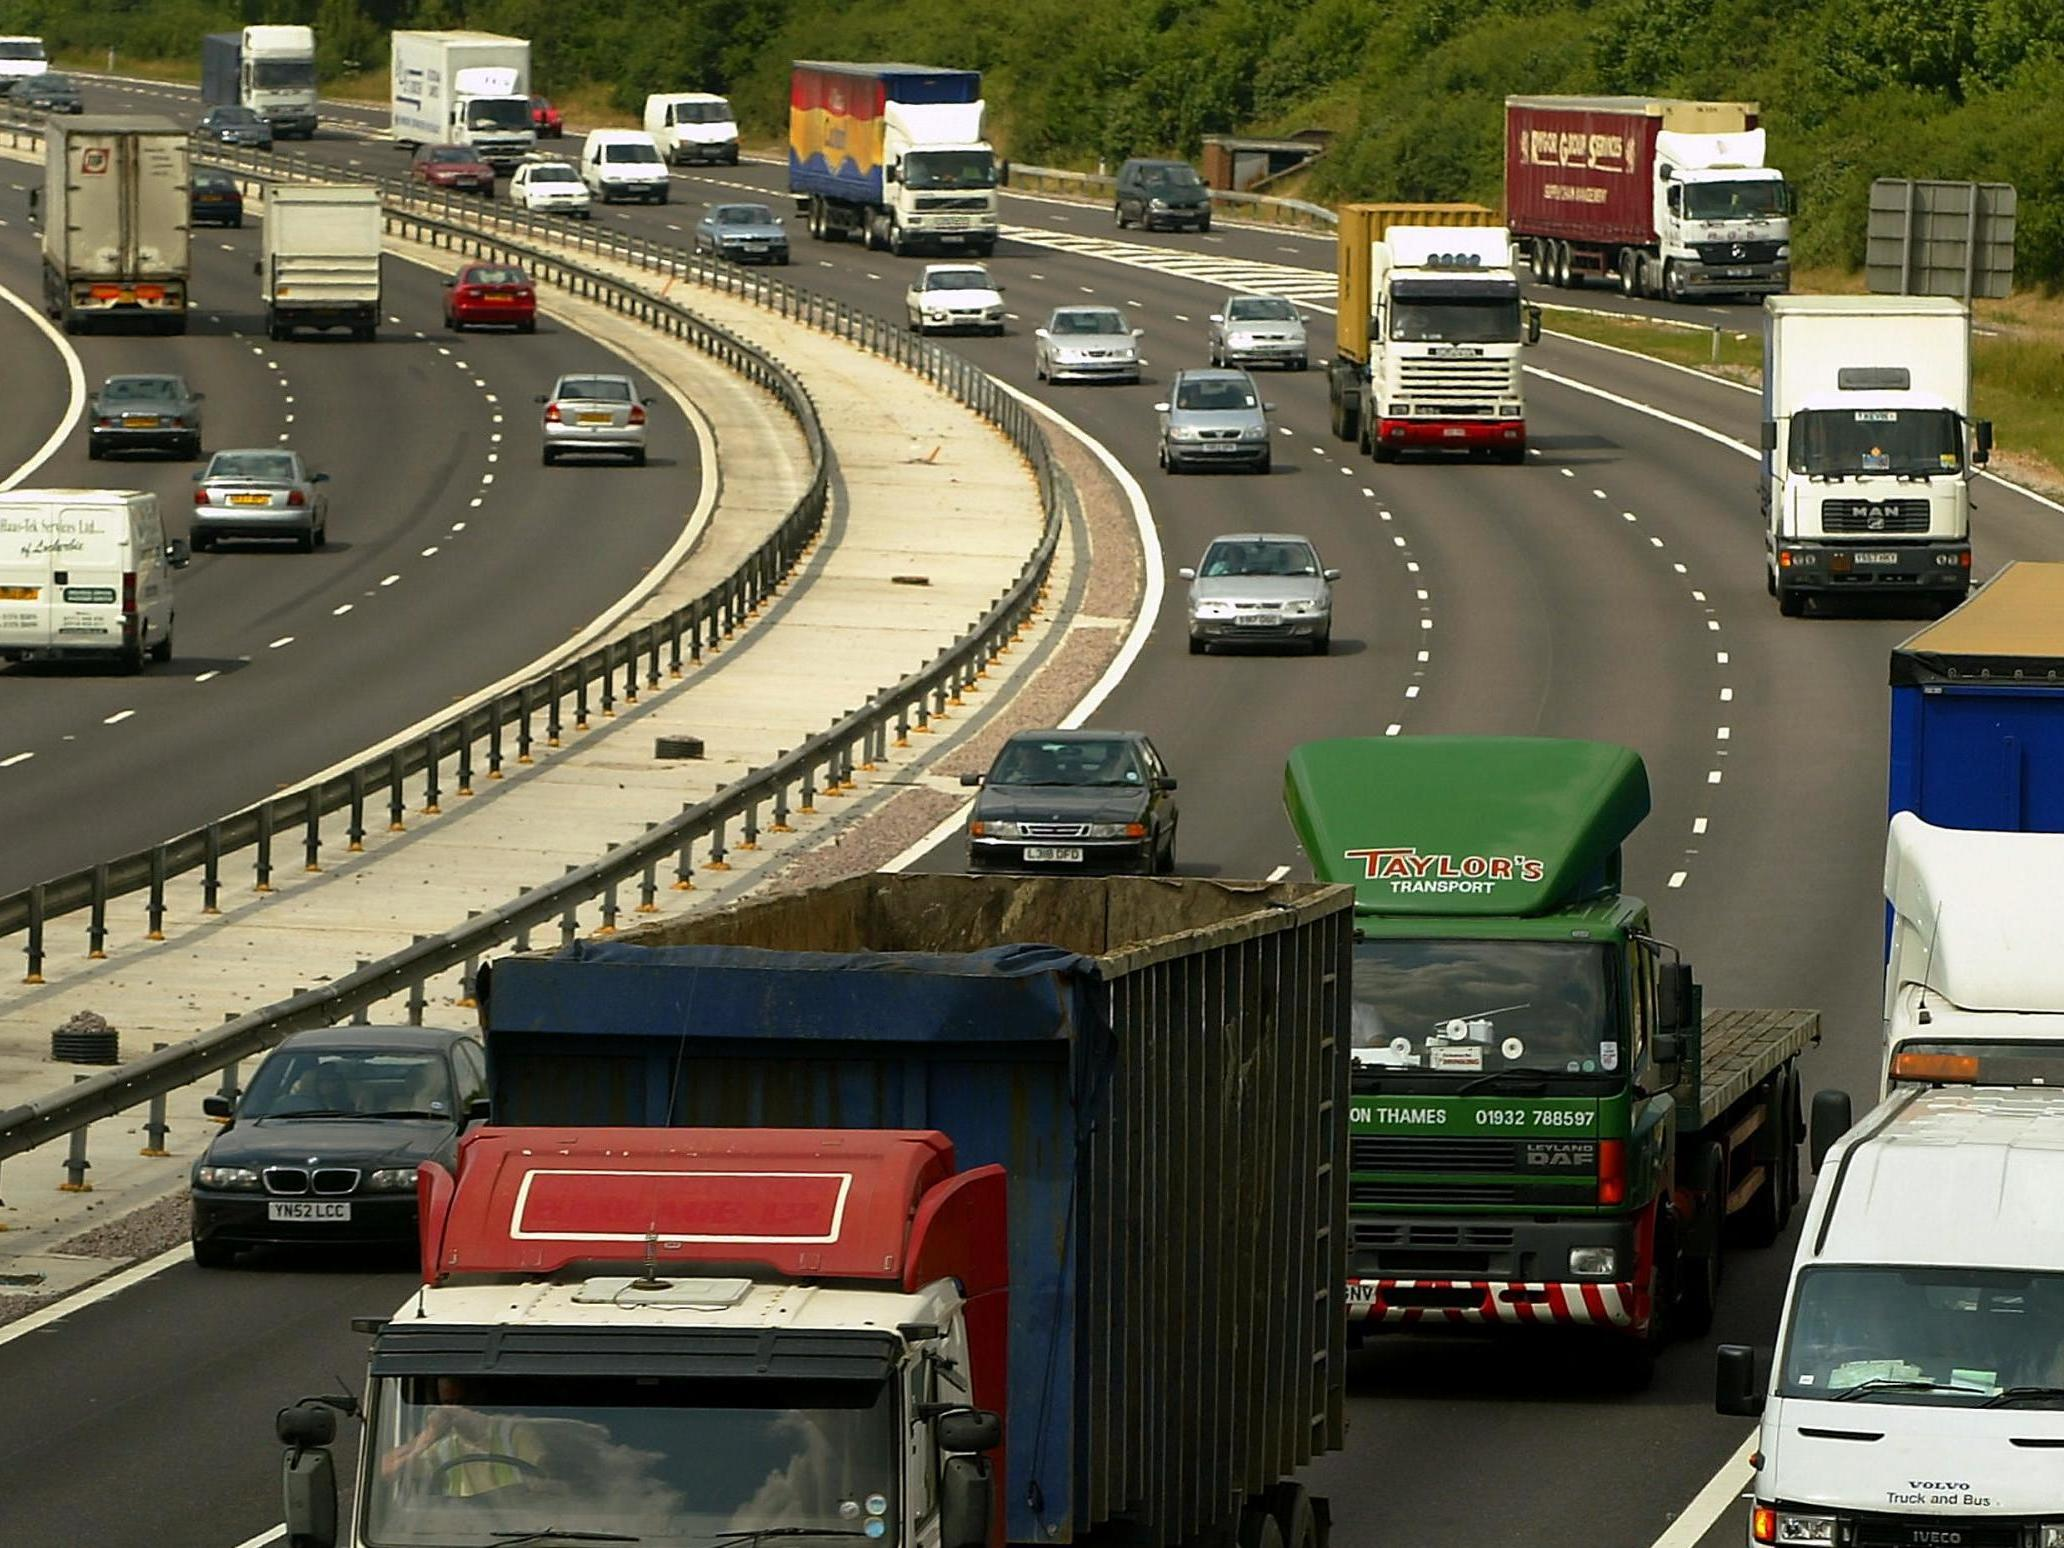 Nine people found in back of lorry on M20 in Kent